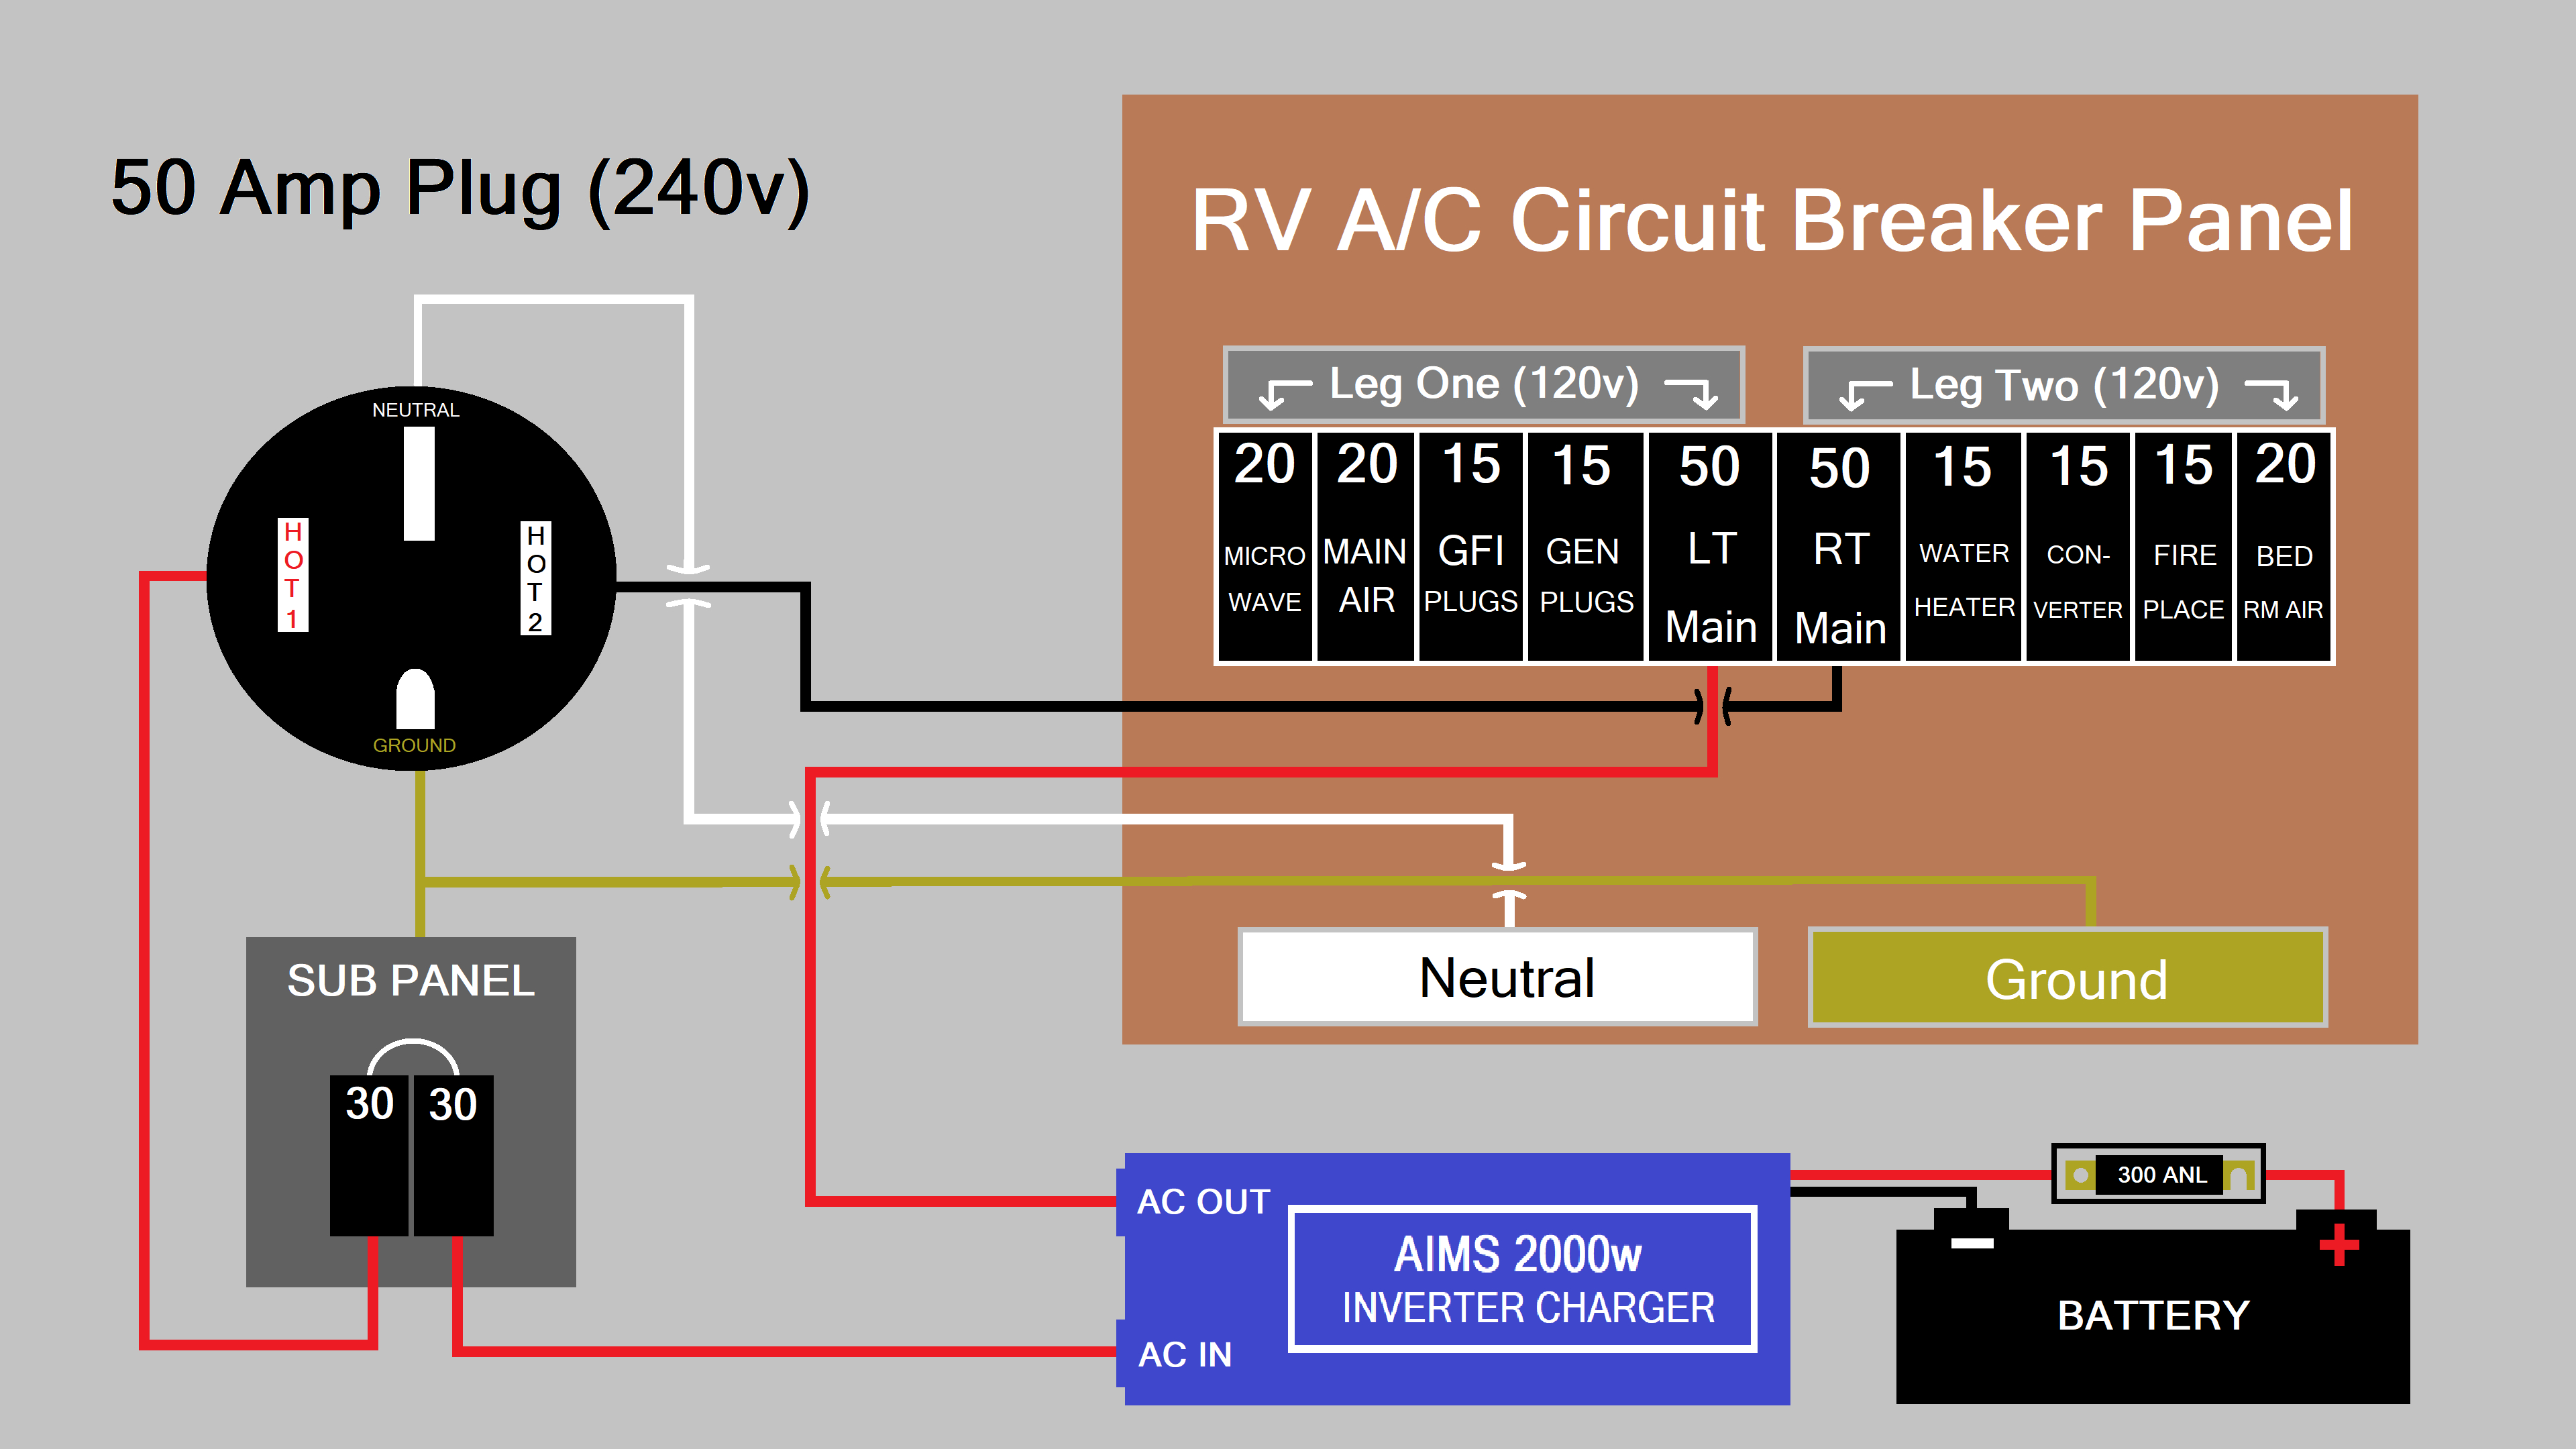 DIAGRAM] 50 Amp Rv Schematic Wiring Diagram FULL Version HD Quality Wiring  Diagram - VENNDIAGRAMPLATYPUS.AEROPORTOLUCCATASSIGNANO.ITaeroportoluccatassignano.it